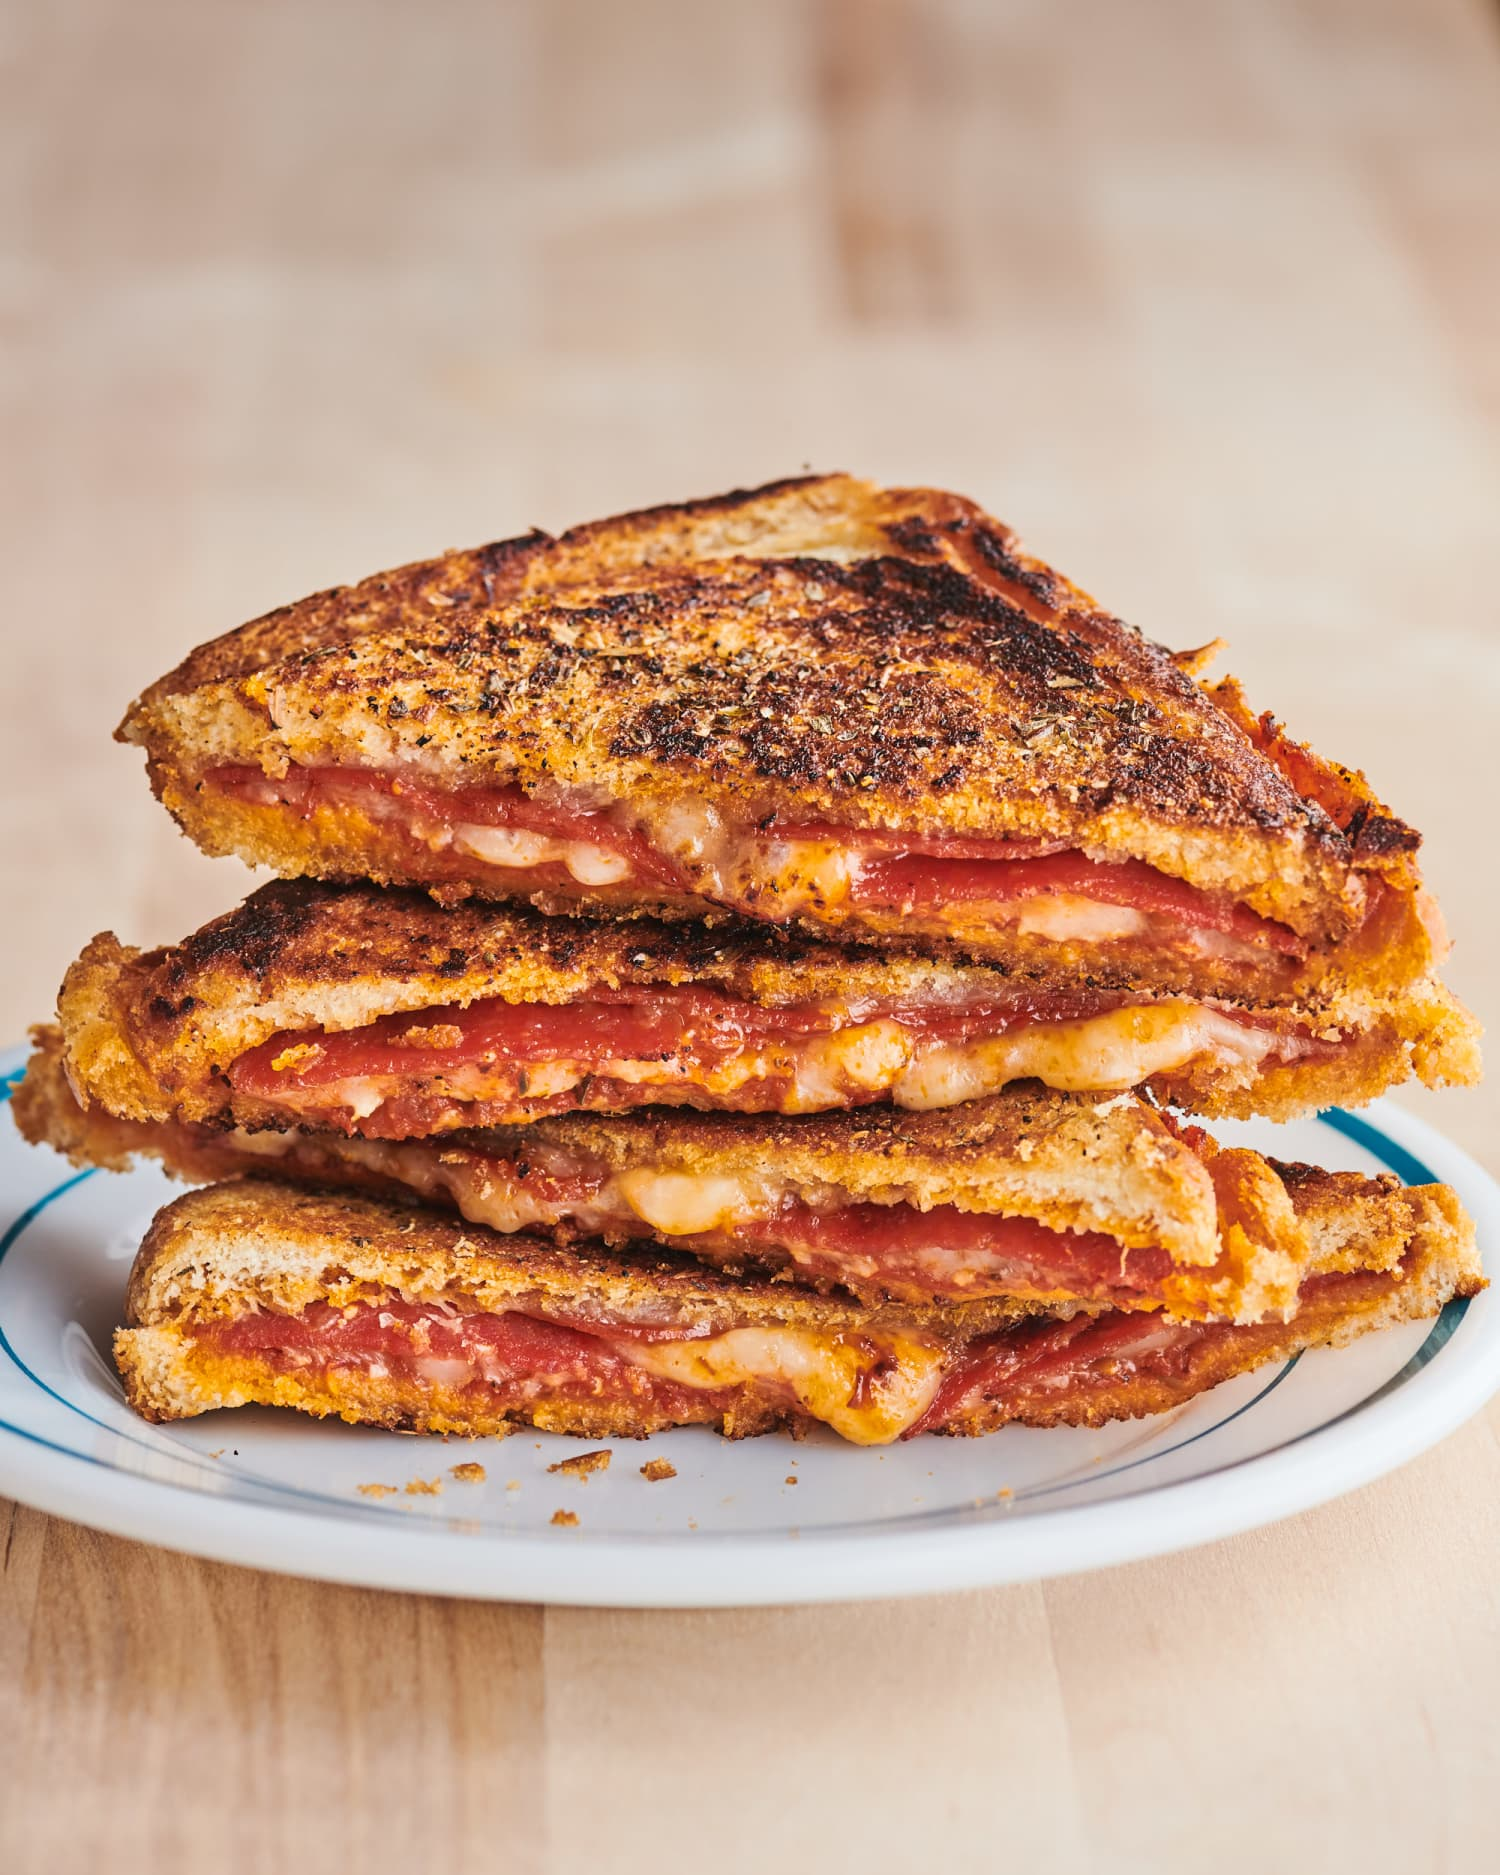 This Sandwich Combines the Best of a Panini, Grilled Cheese, and Pizza